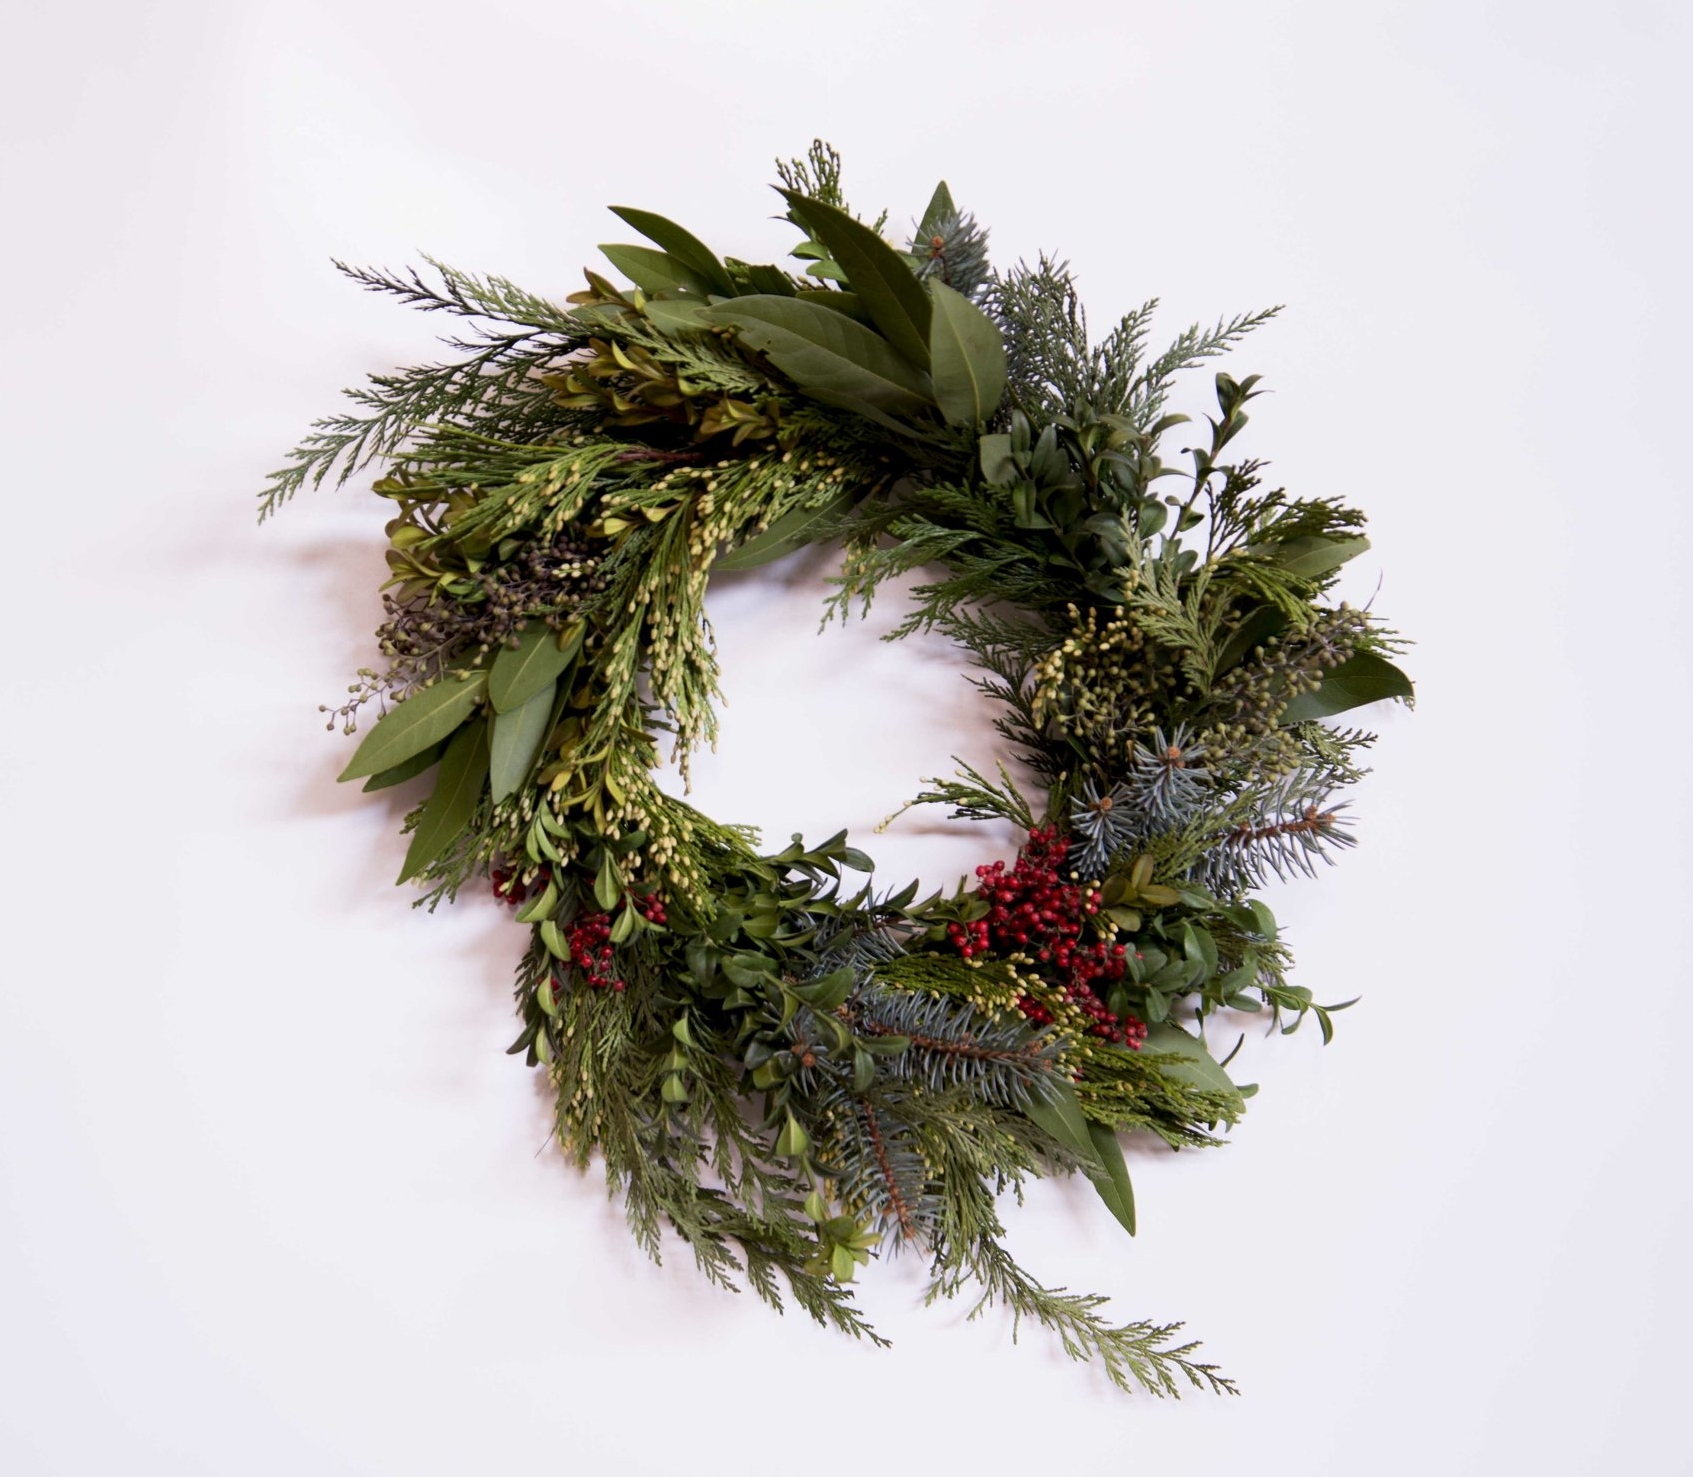 HOLIDAY WREATHS ARE HERE! - Order a holiday wreath anytime during the months of December + January.We deliver weekly, complimentary in Loveland,every Wednesday and Thursday.Wreath sizes and prices vary. Email us at lucy.wildposies@gmail.com for more information.